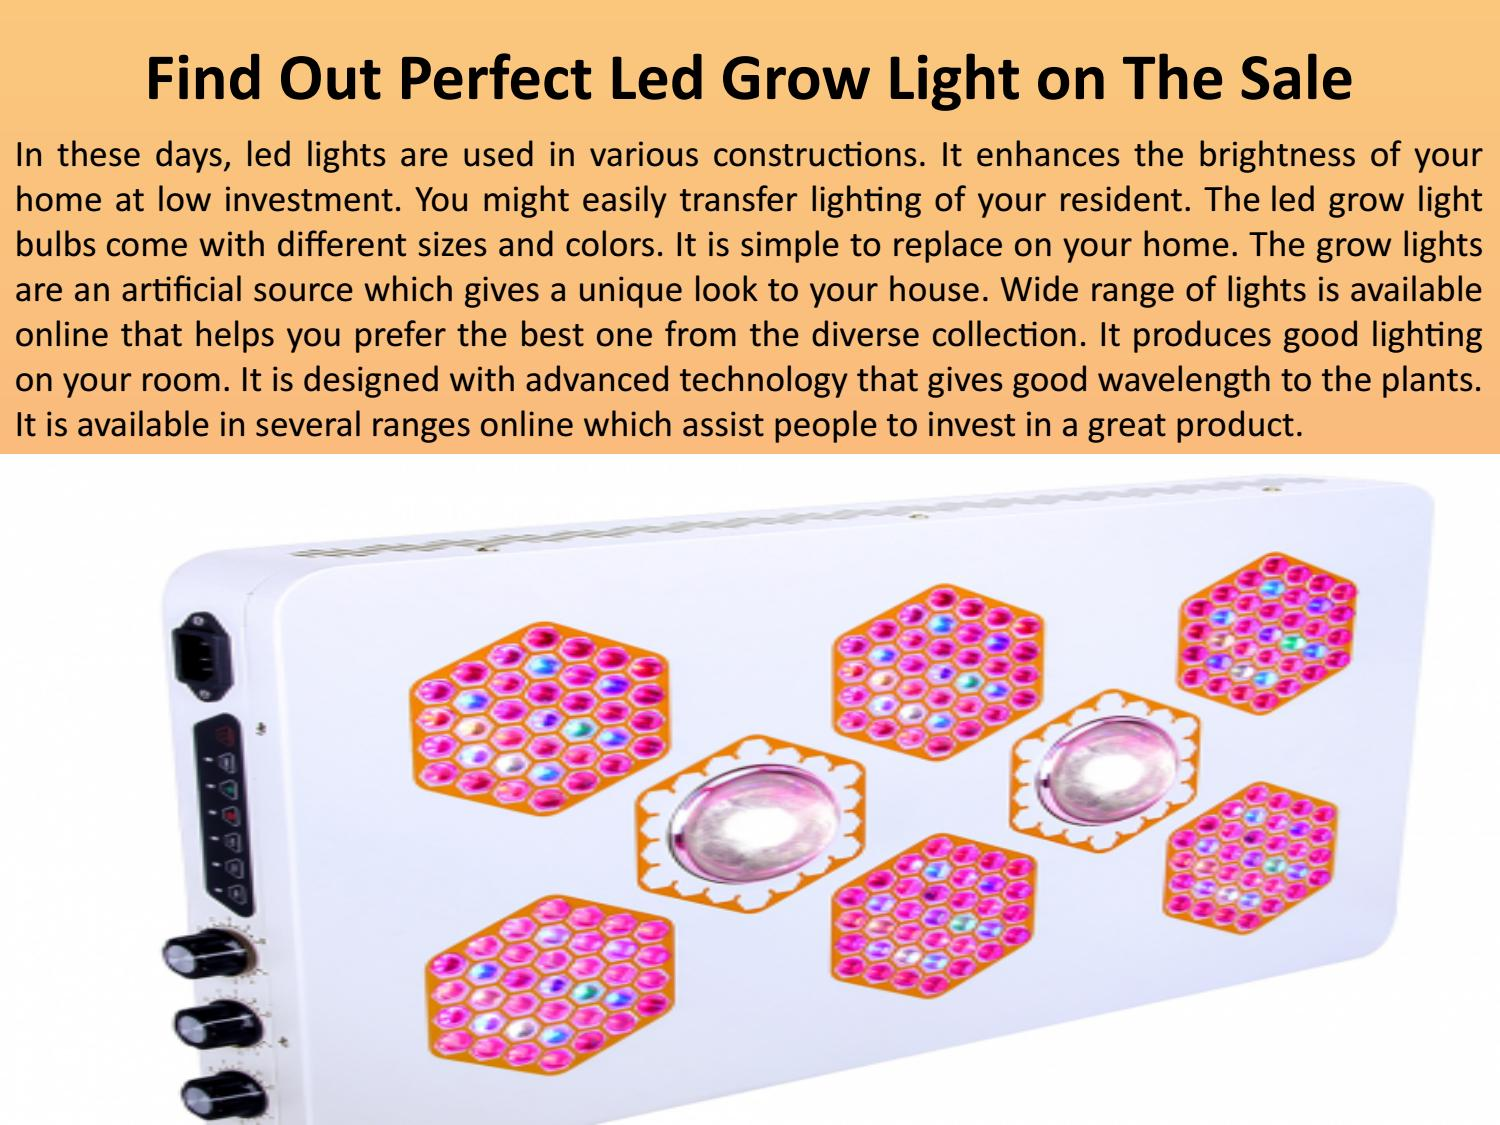 Find Out Perfect Led Grow Light On The Sale By Fauna Lights